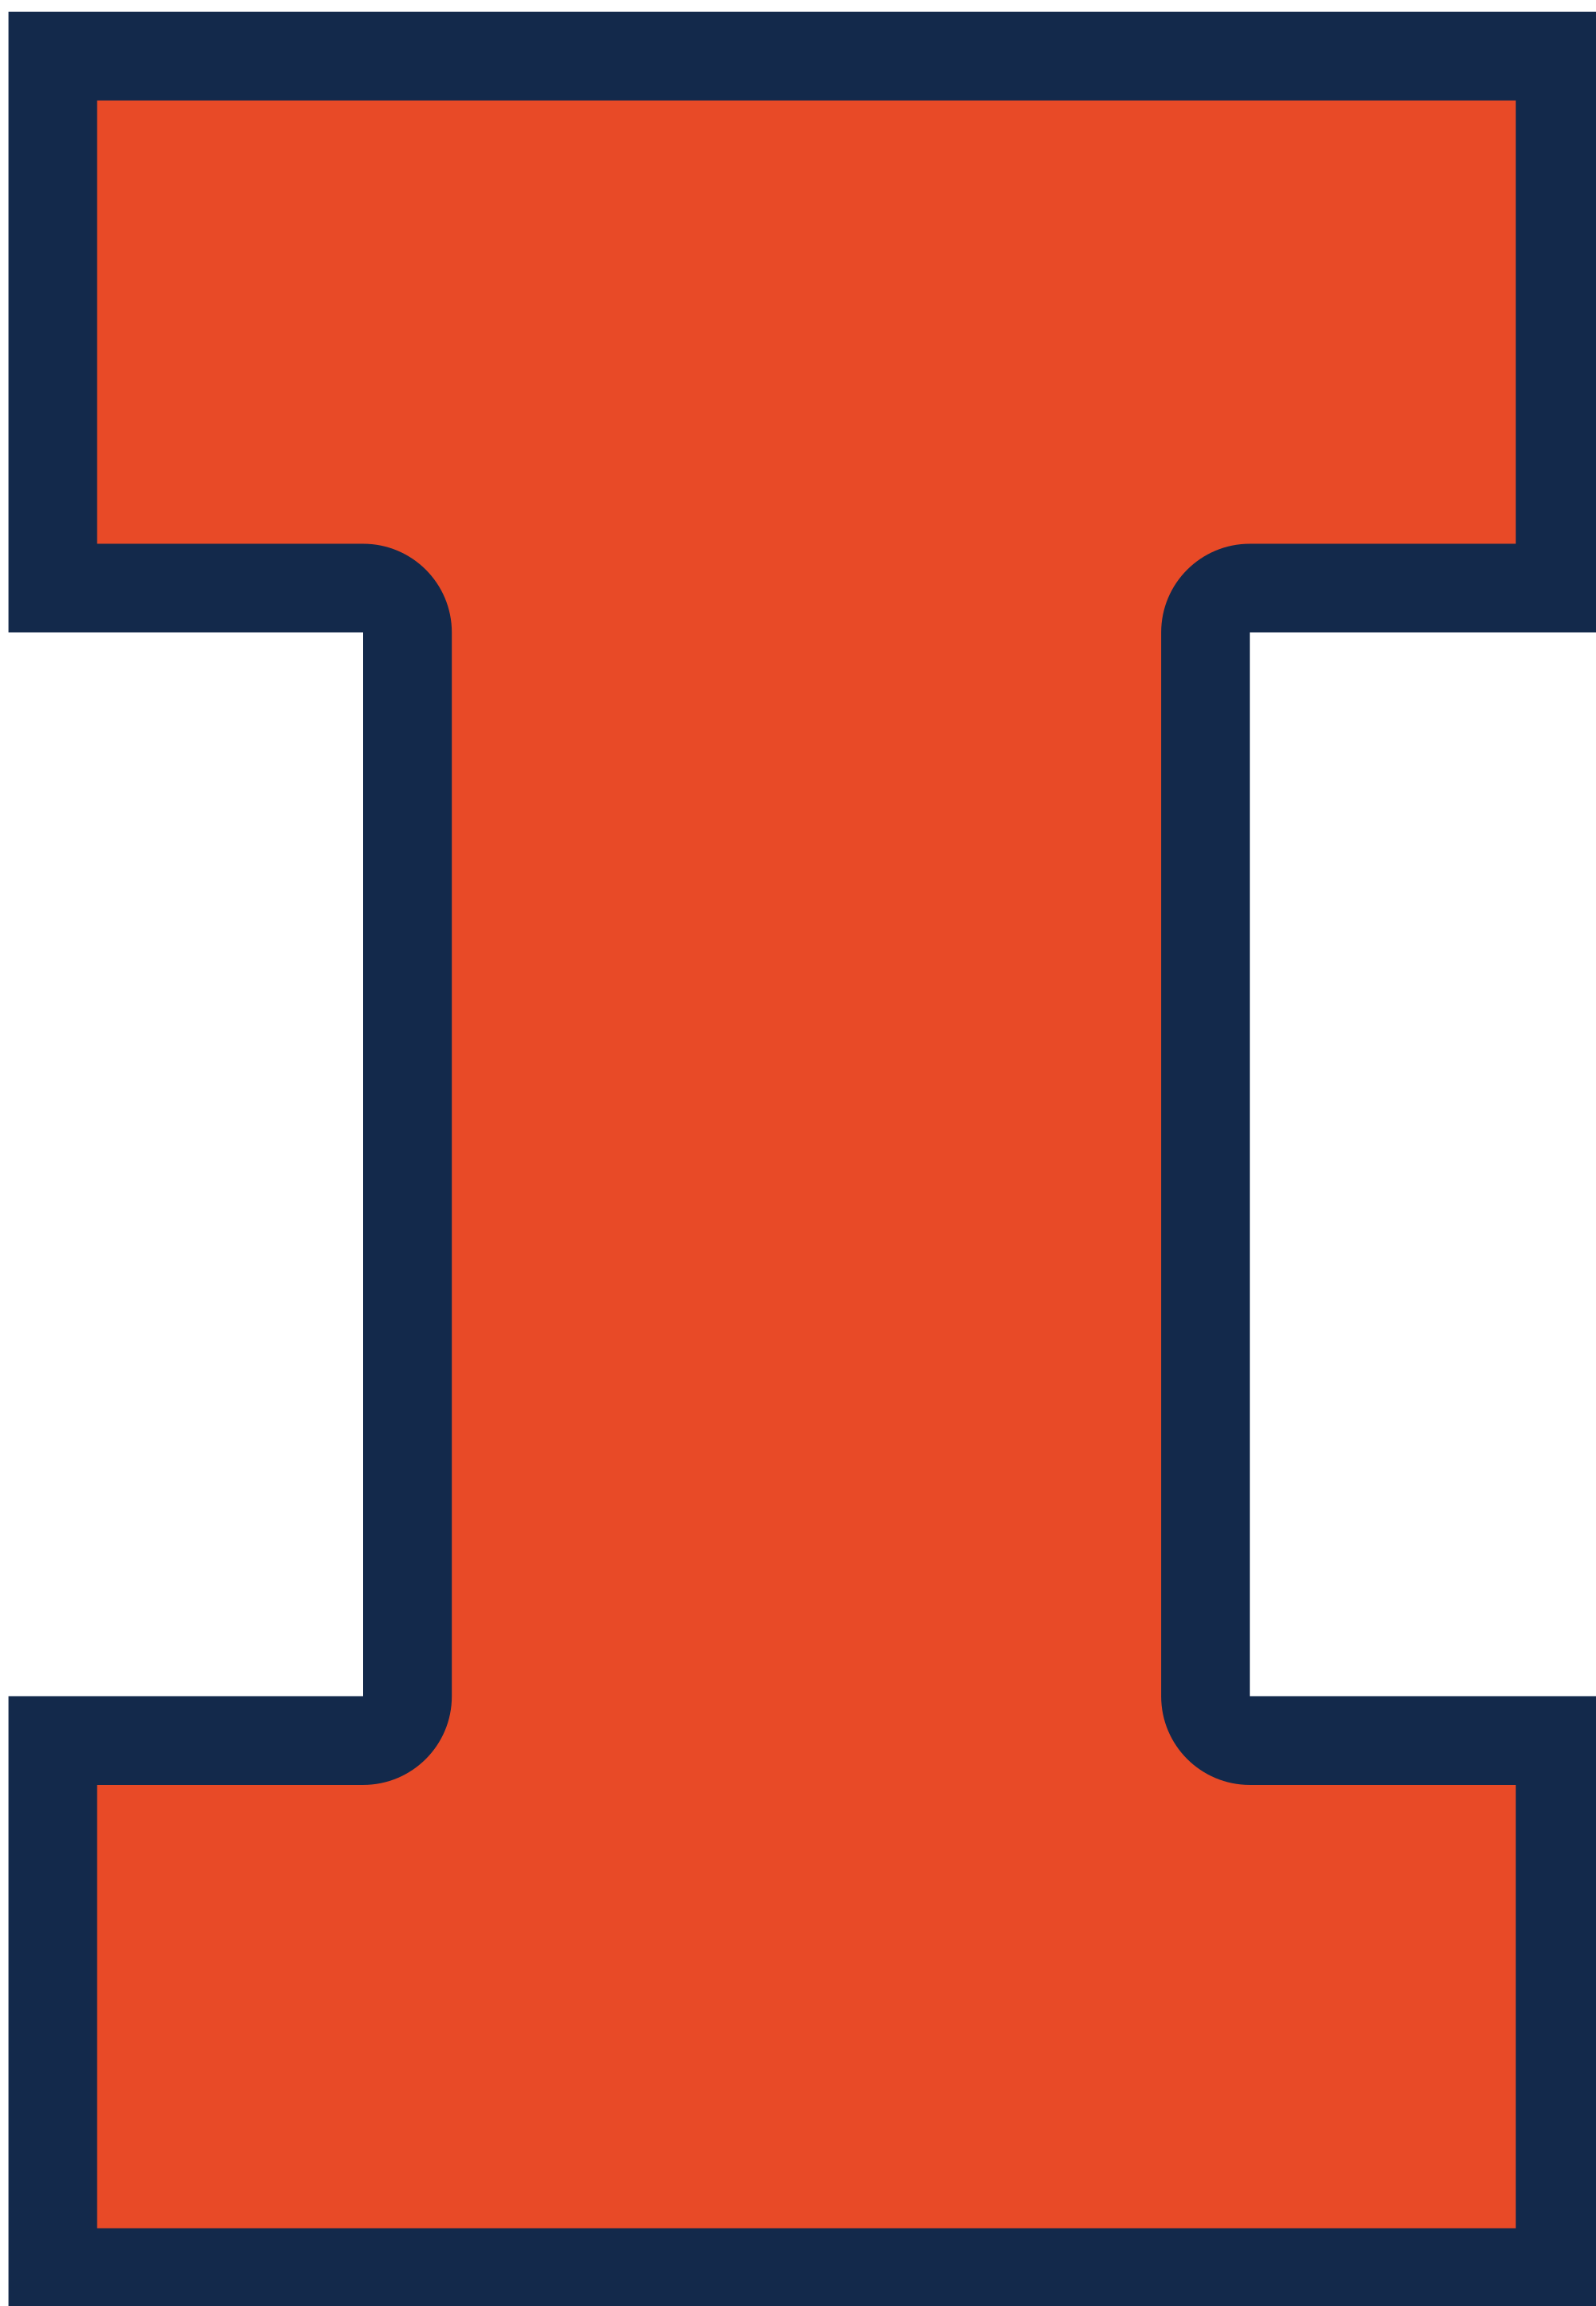 Illinois Fighting Illini | Basketball Wiki | FANDOM ...